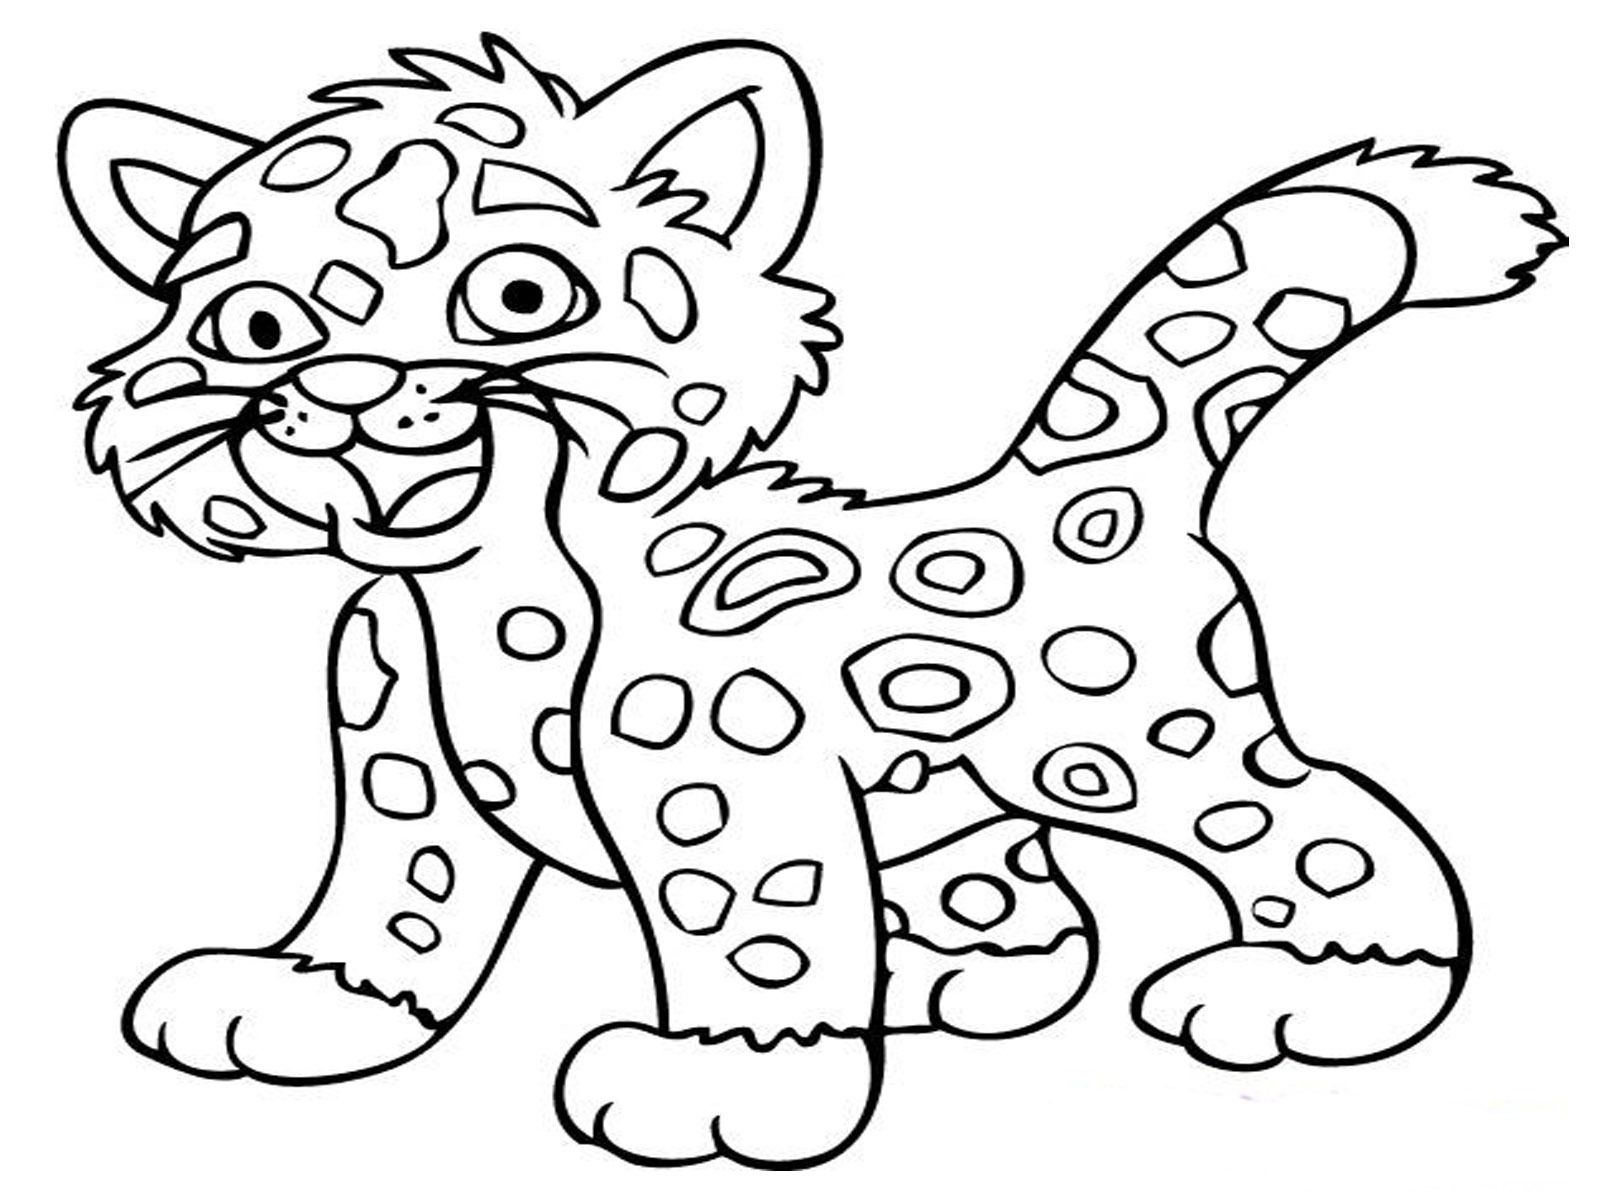 Coloring Pages To Print Animals - High Quality Coloring Pages